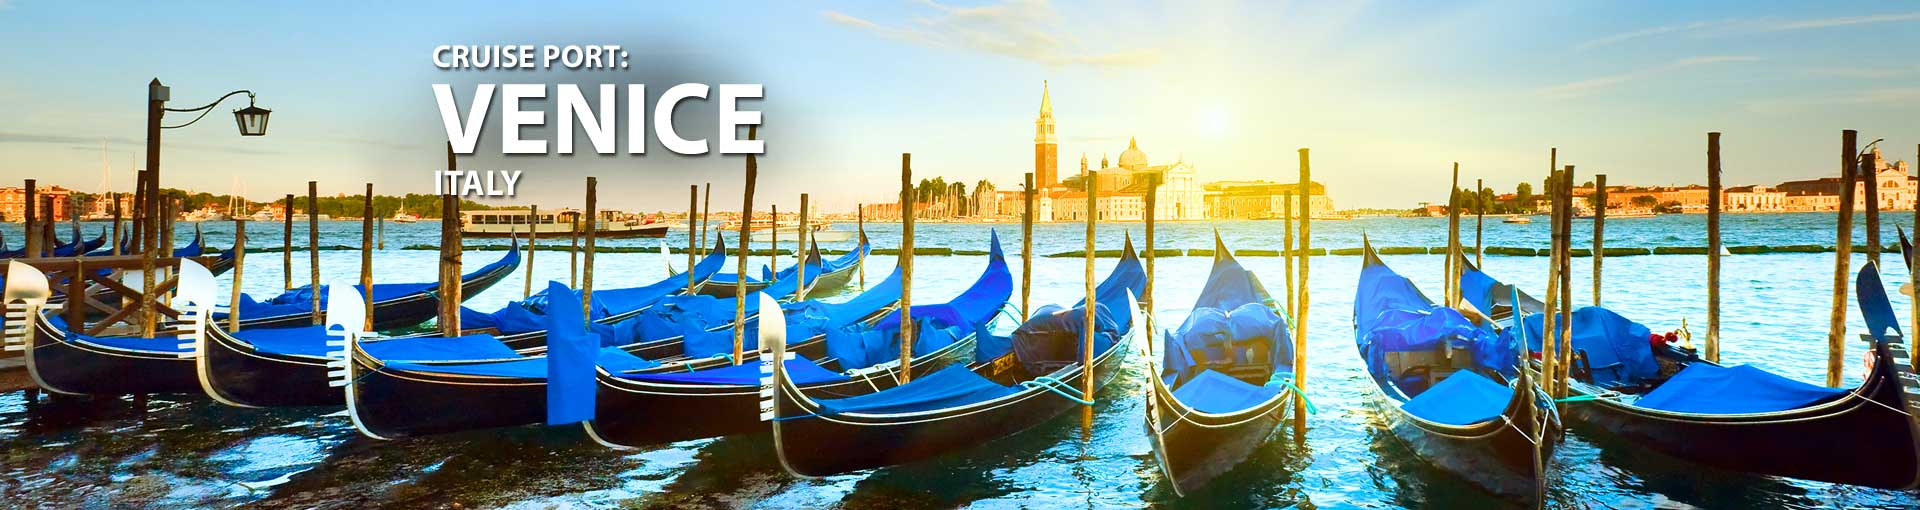 Cruise Port of Venice, Italy